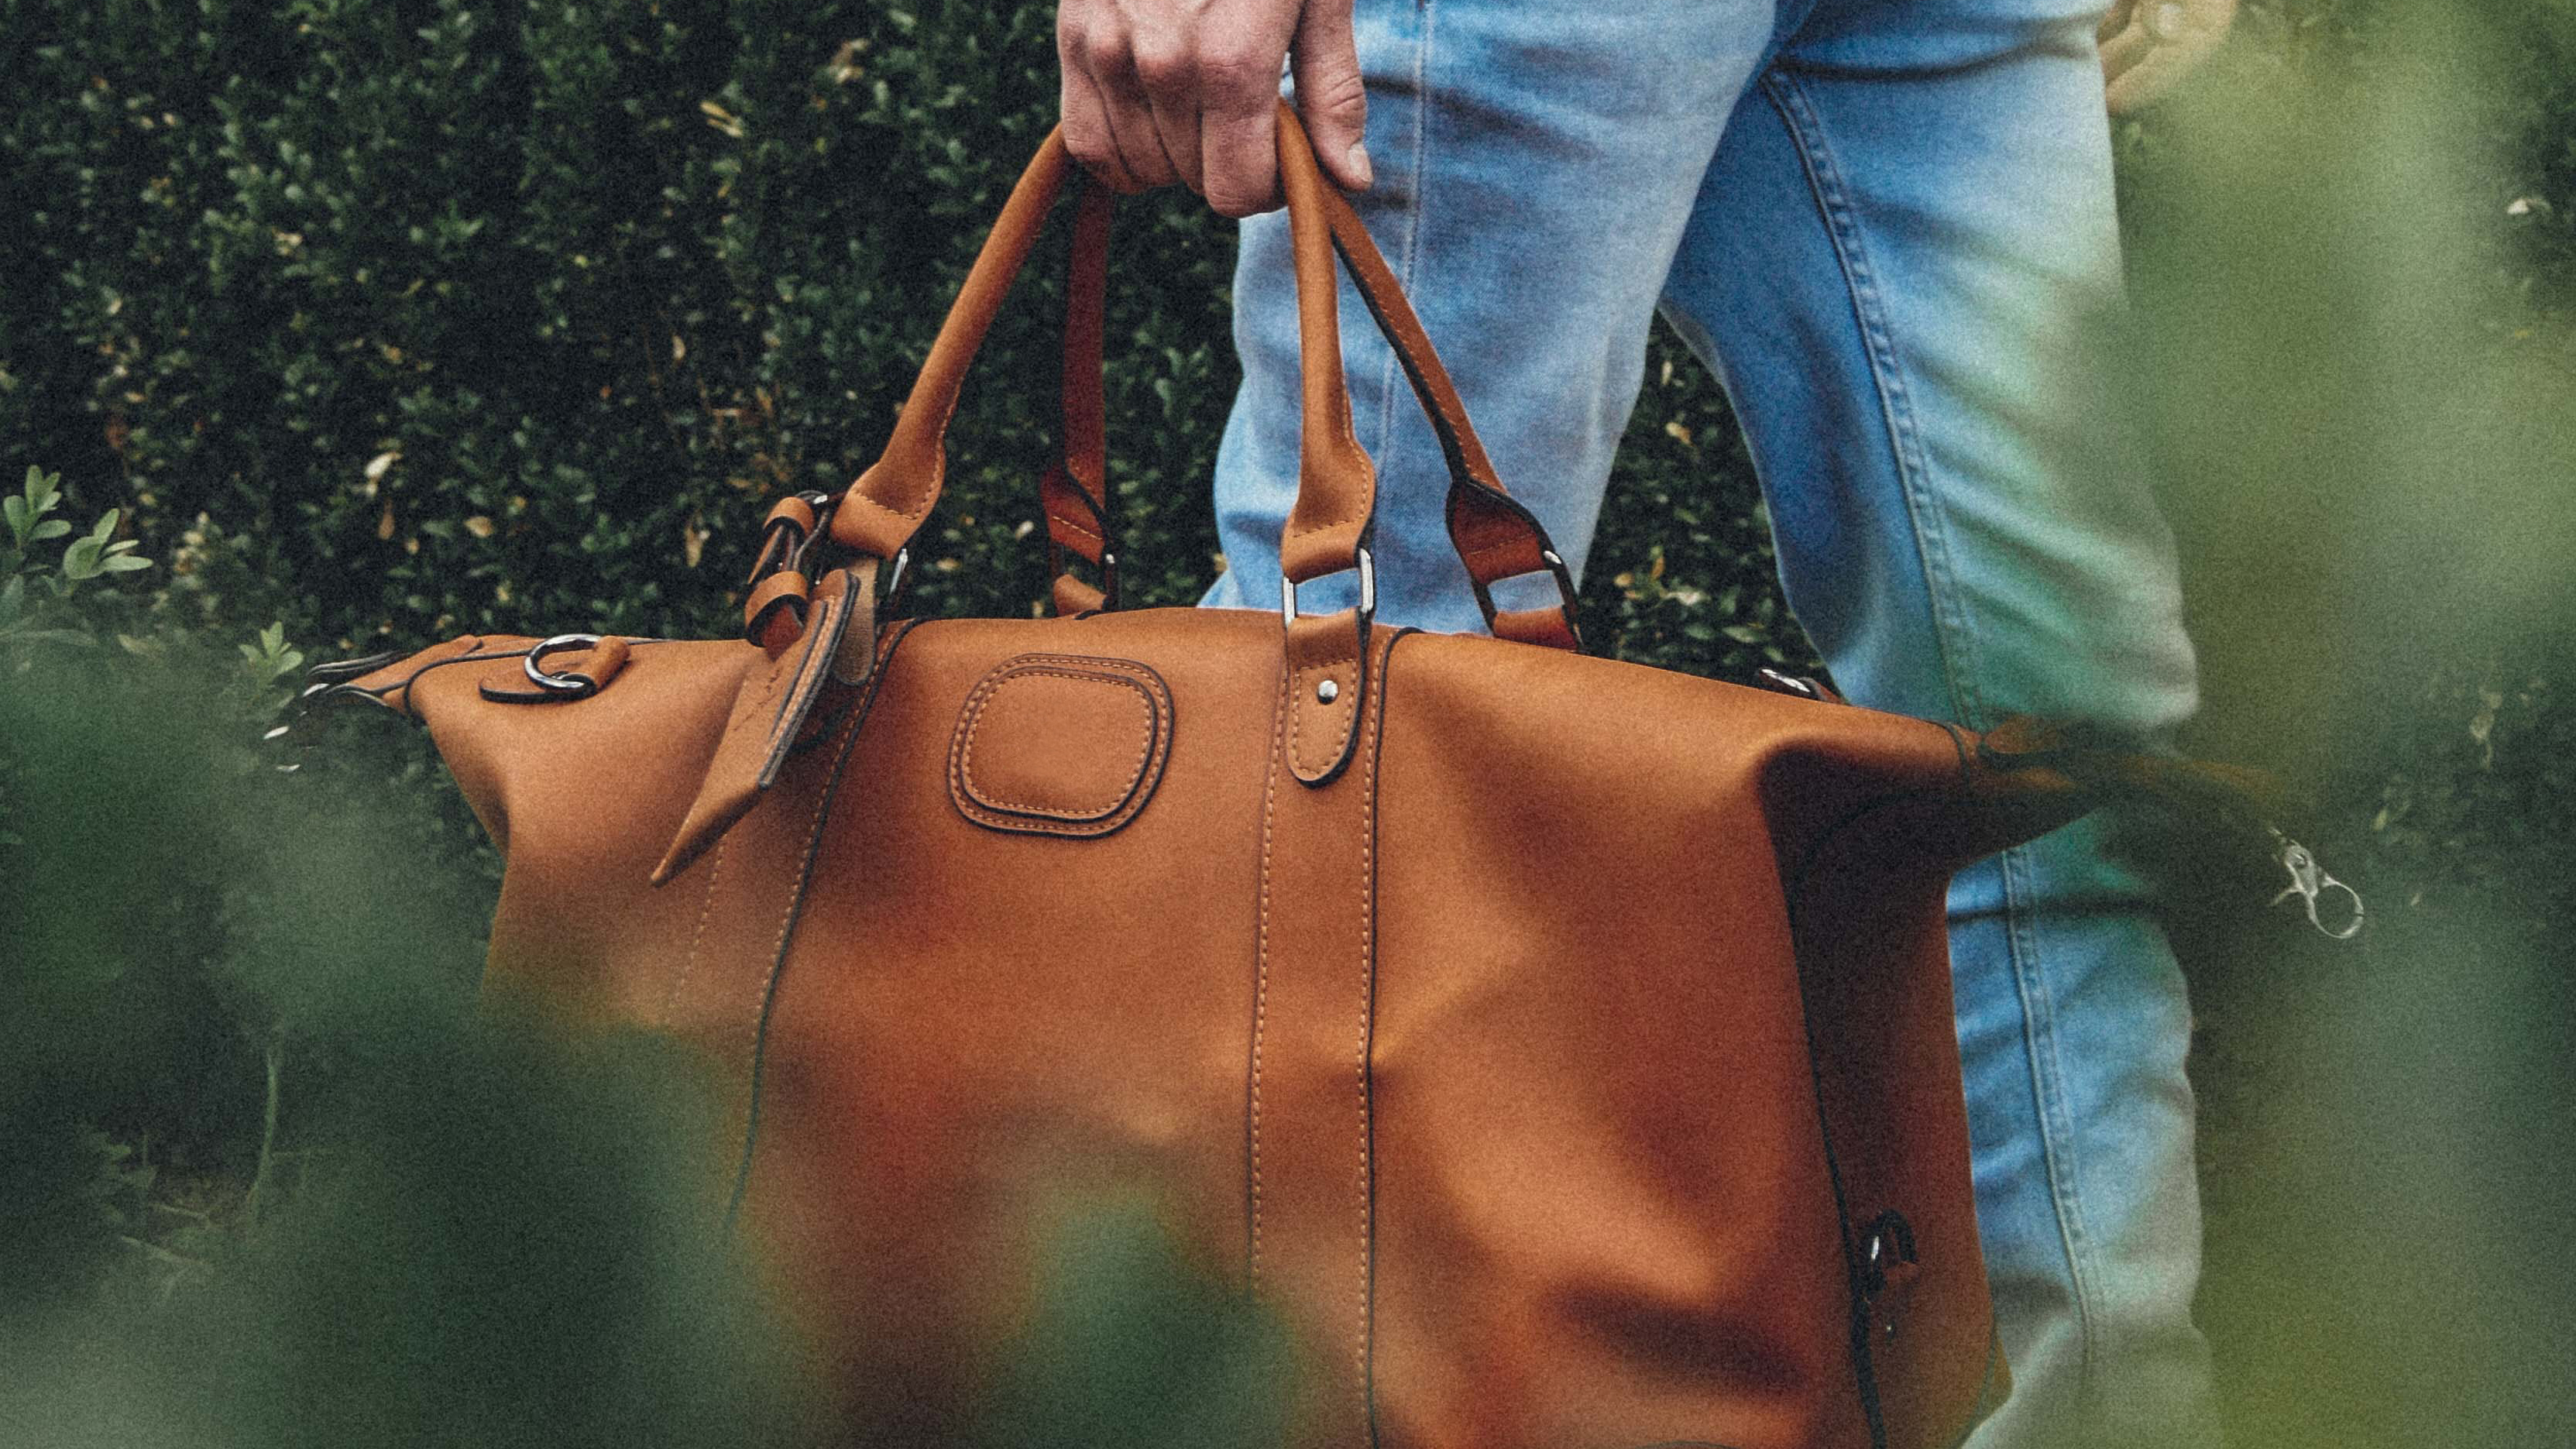 How sustainable is leather?